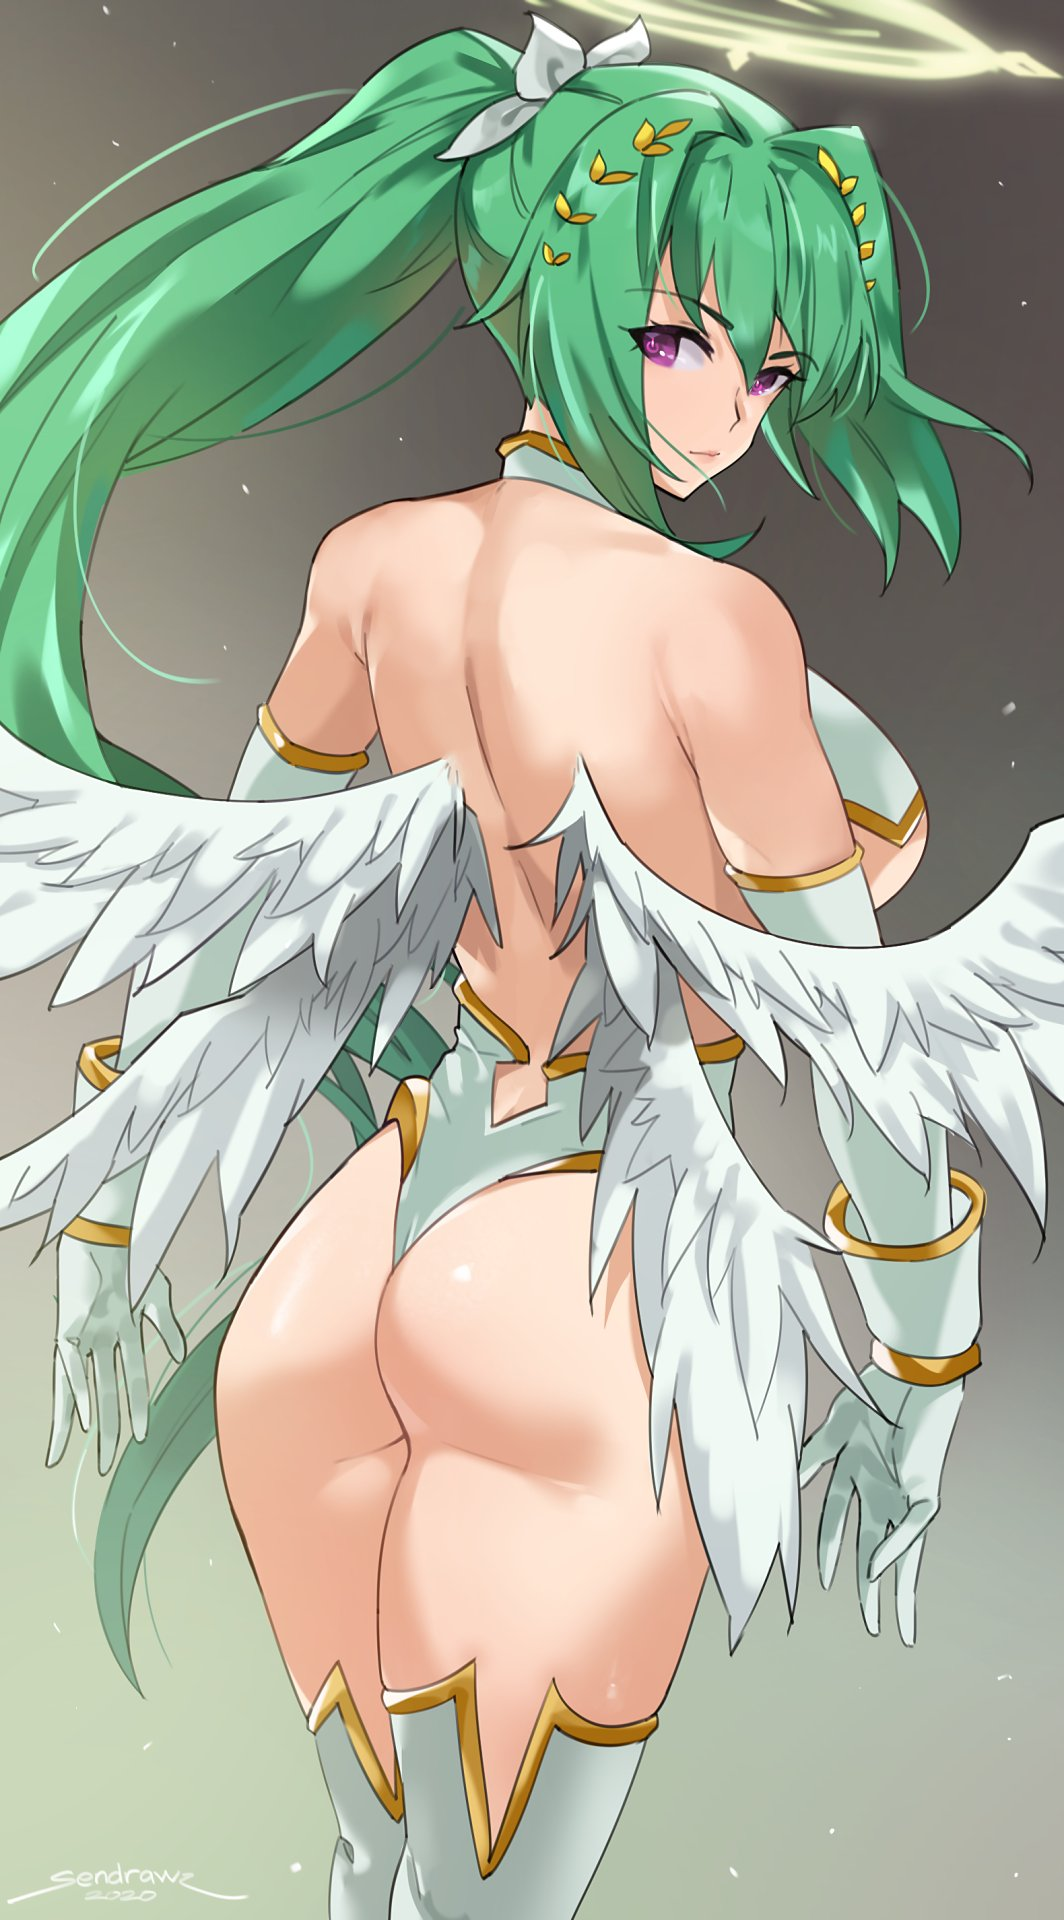 1girl 2020 angel angel_wings ass backless_outfit bare_shoulders blush breasts elbow_gloves feathered_wings four_goddesses_online:_cyber_dimension_neptune from_behind gloves green_hair green_heart hair_ornament halo highres large_breasts long_hair looking_at_viewer looking_back neptune_(series) ponytail sendrawz signature solo symbol-shaped_pupils very_long_hair violet_eyes white_gloves white_legwear white_wings wings